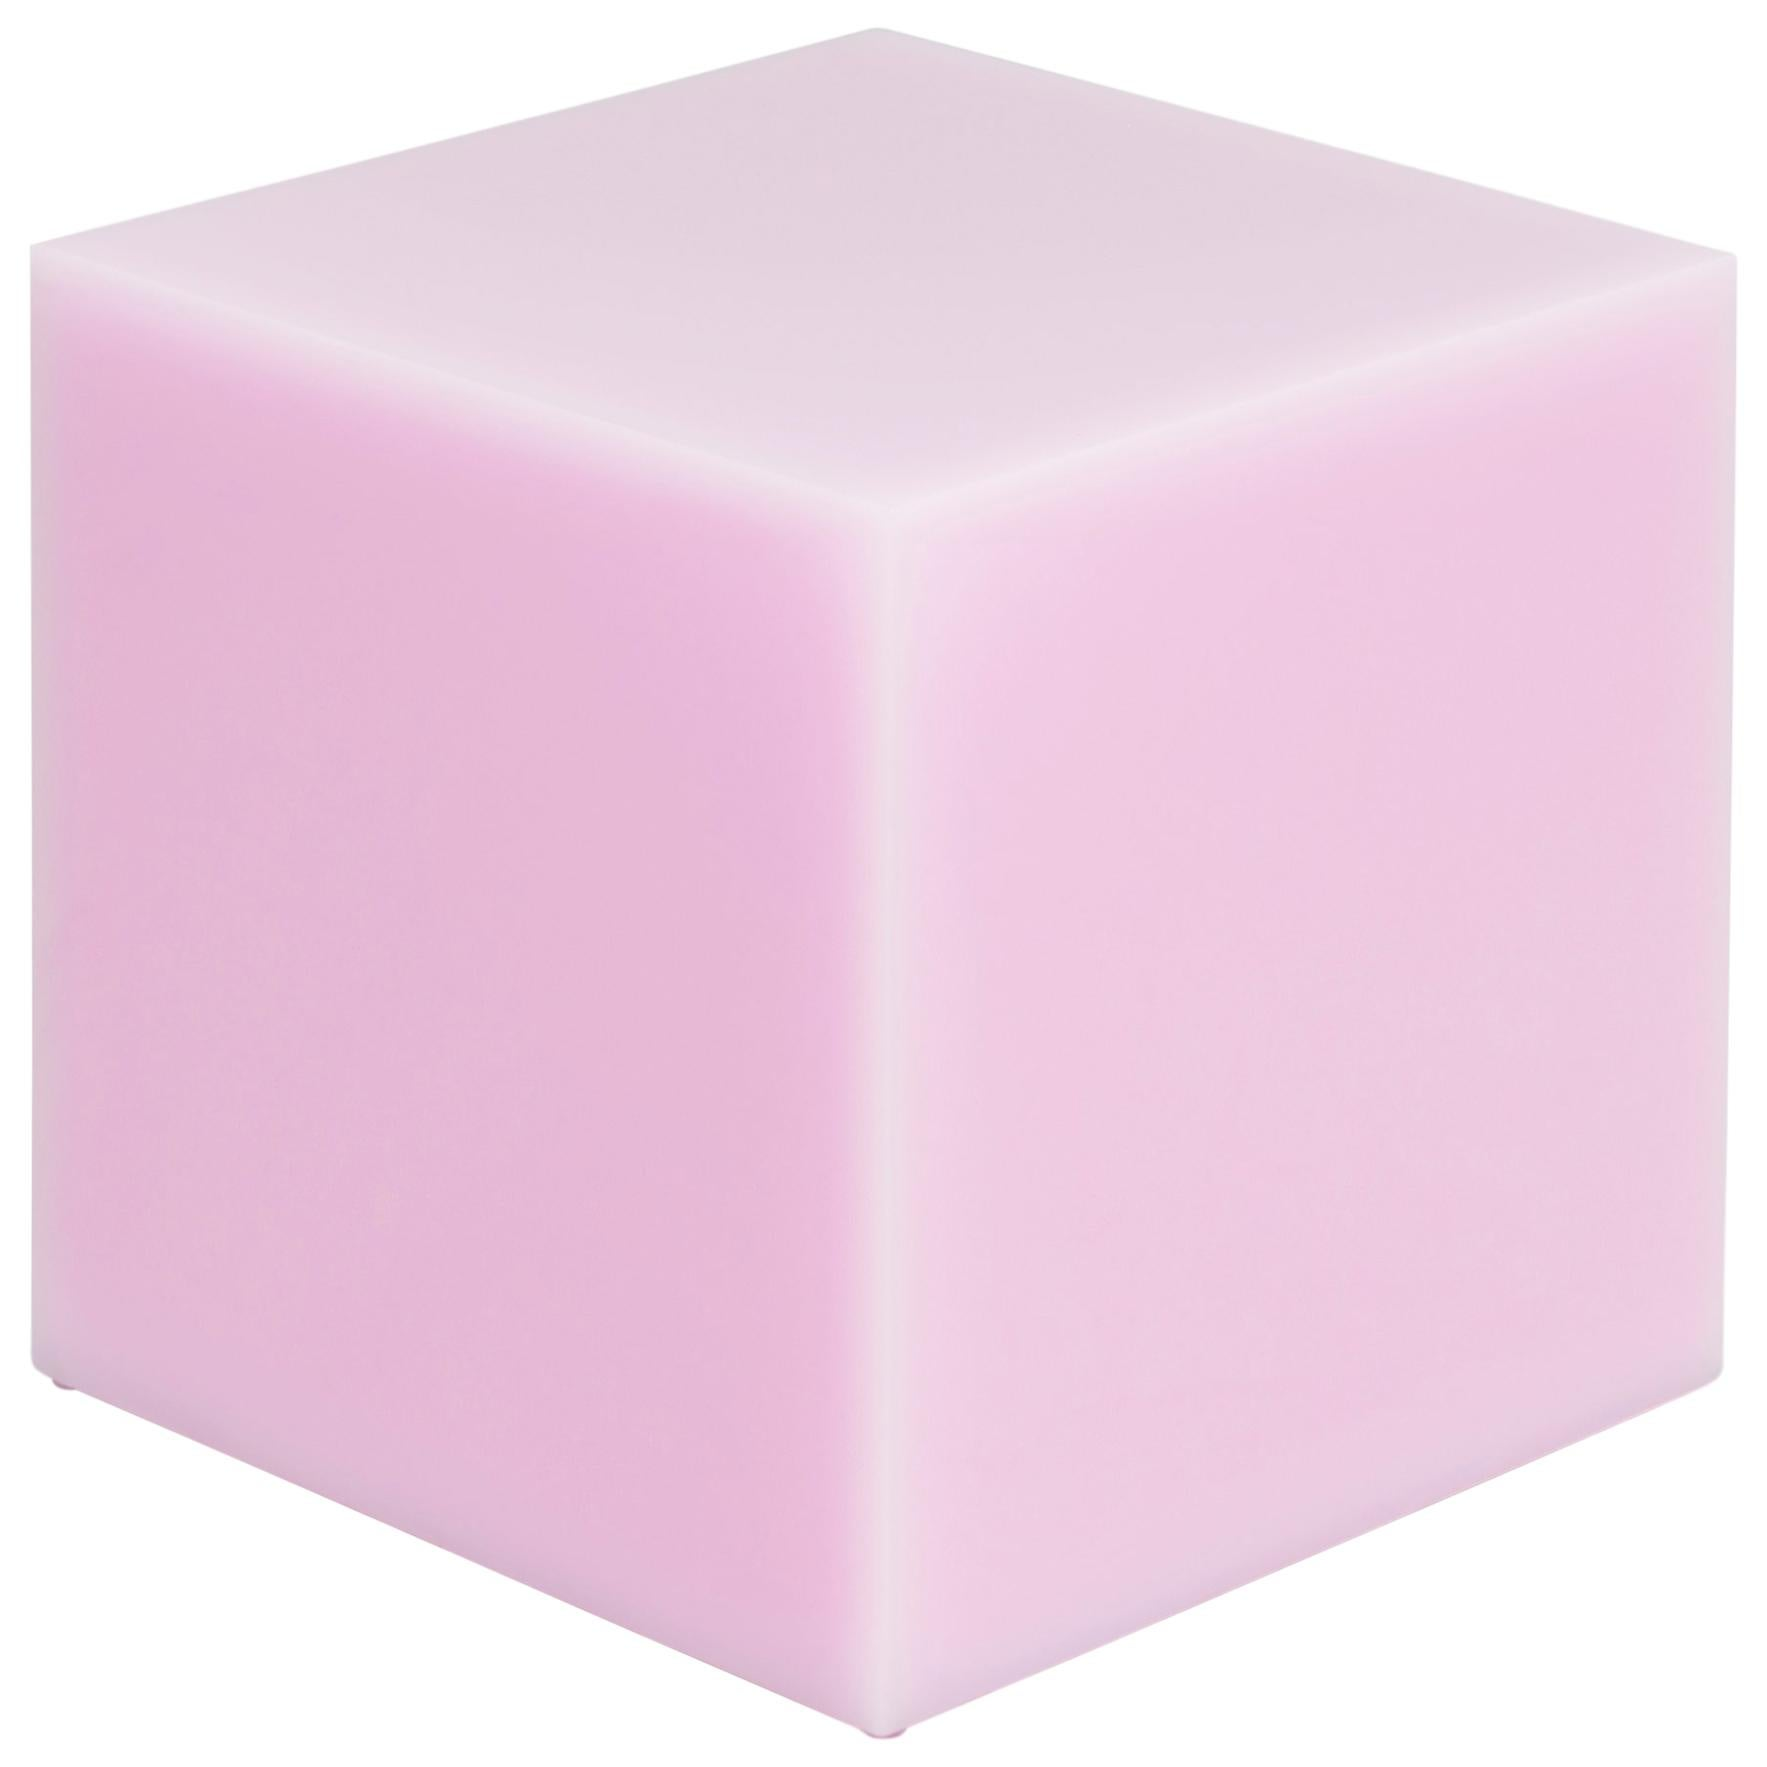 Contemporary Glossy Resin Side Table, Candy Cube in Bubblegum Pink, 60 cm3